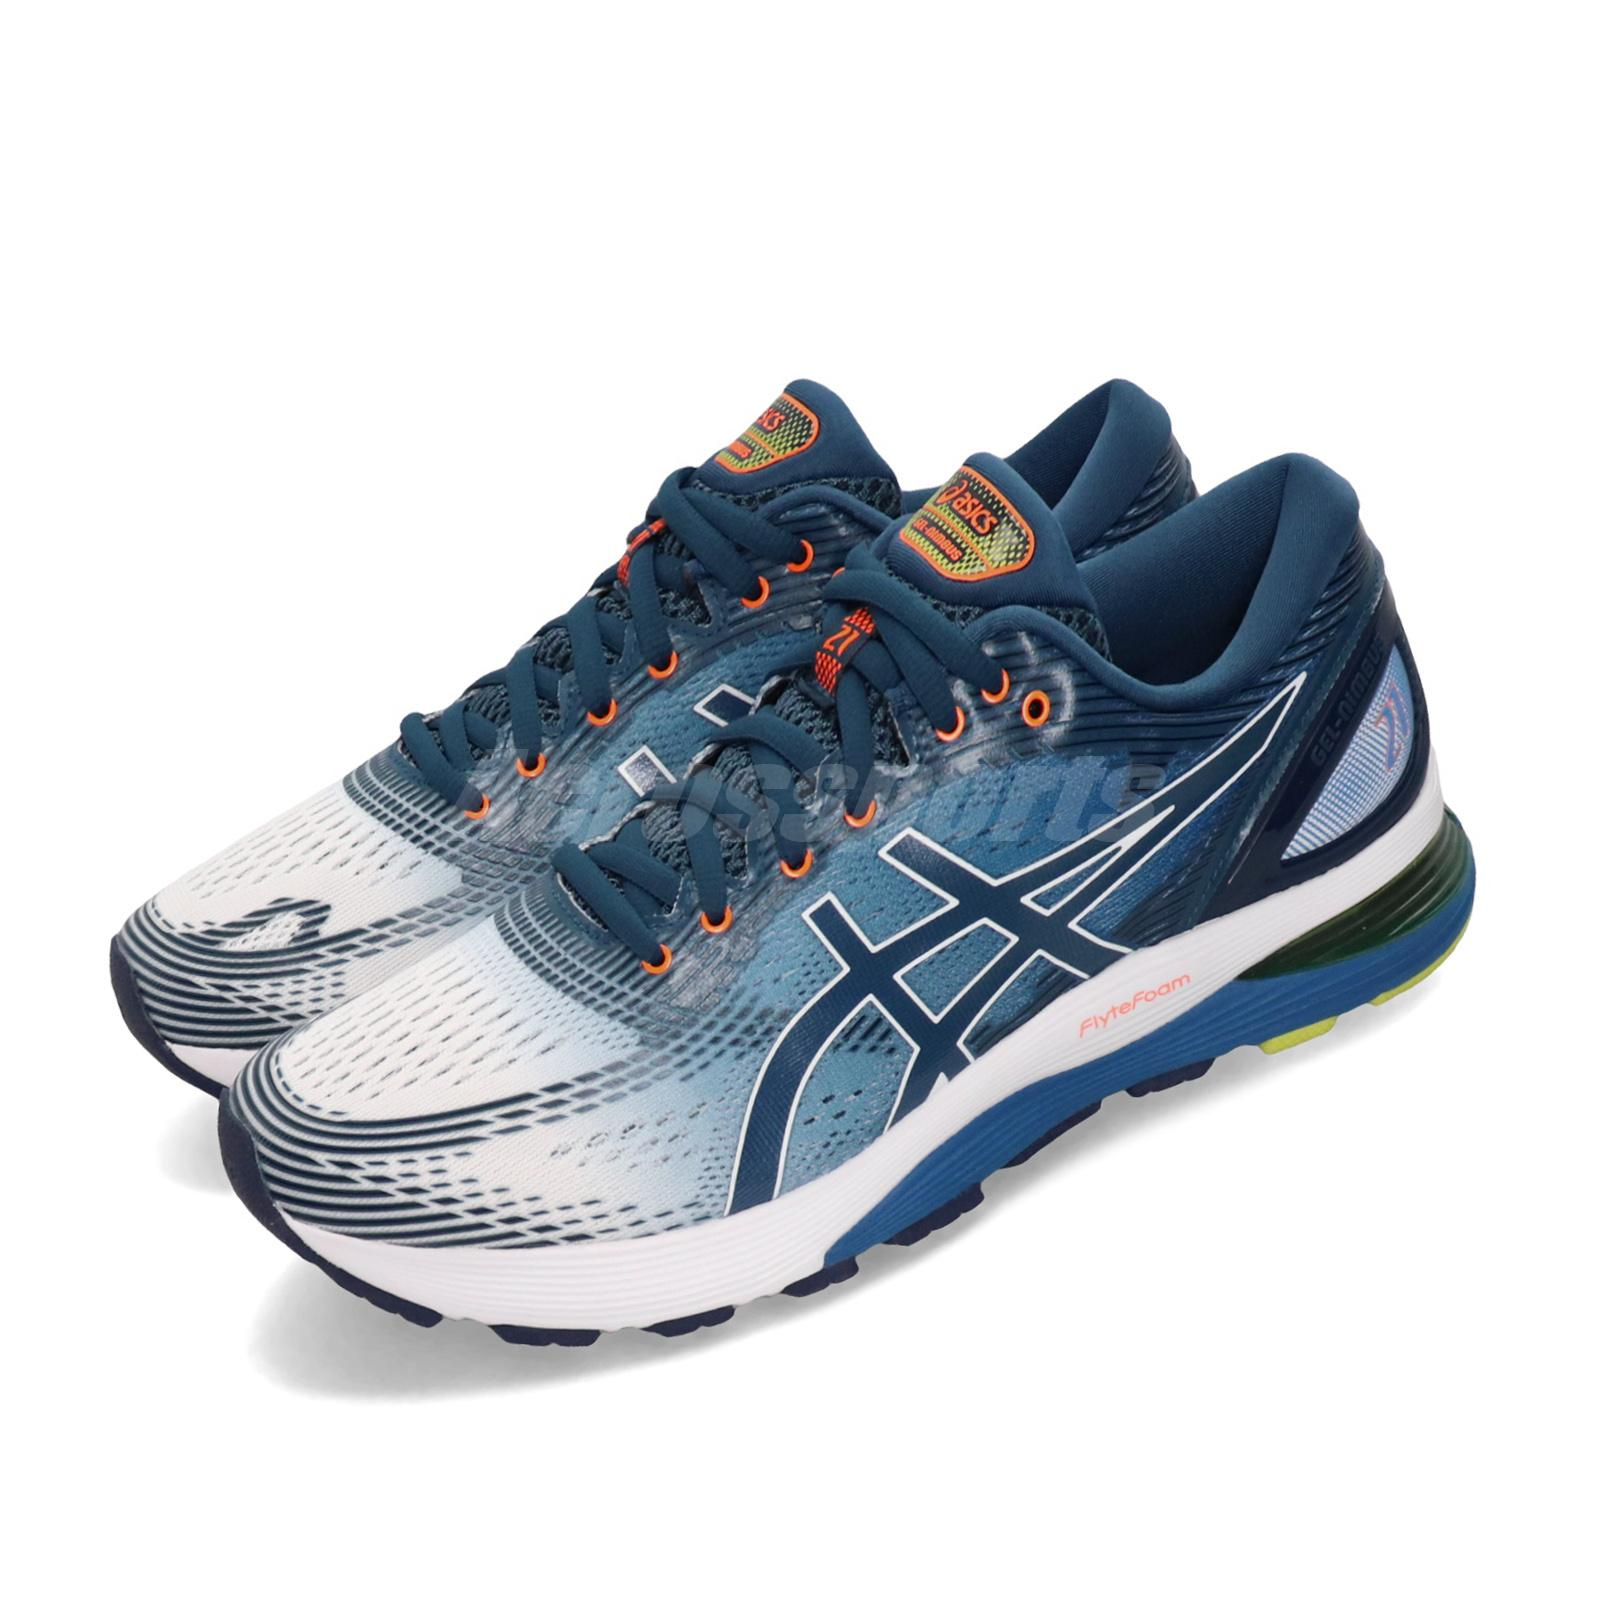 Details about Asics Gel-Nimbus 21 White Blue Orange Men Running Shoes  Sneakers 1011A714-100